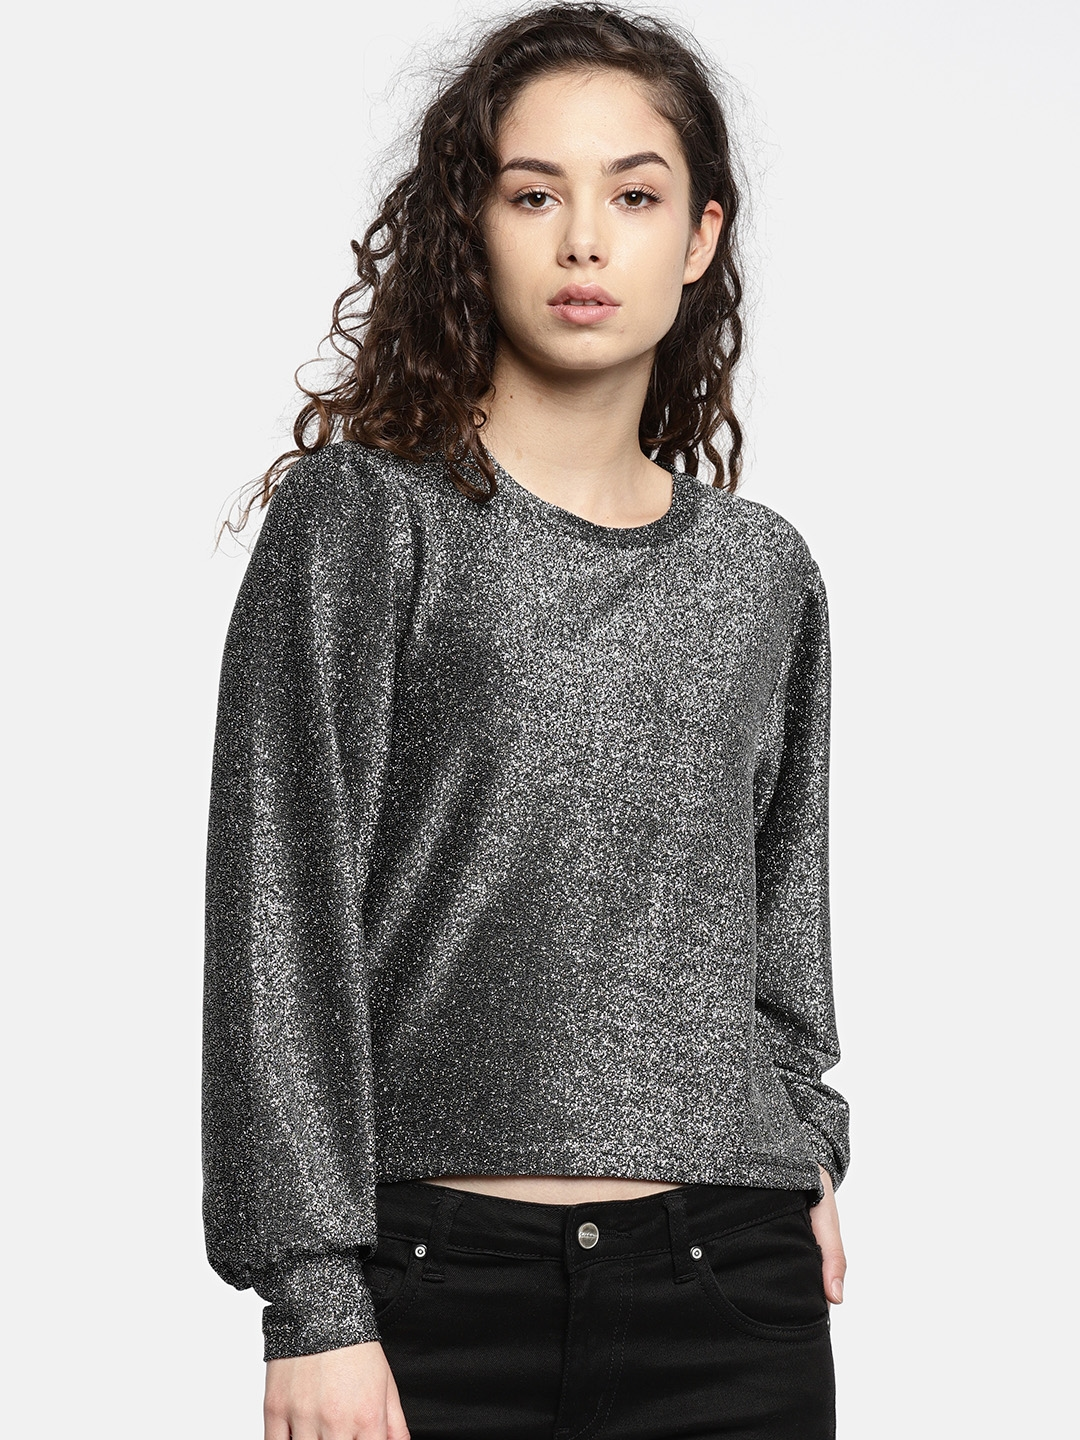 e9b84cc717f71 Buy Deal Jeans Women Charcoal Grey Shimmer Top - Tops for Women ...